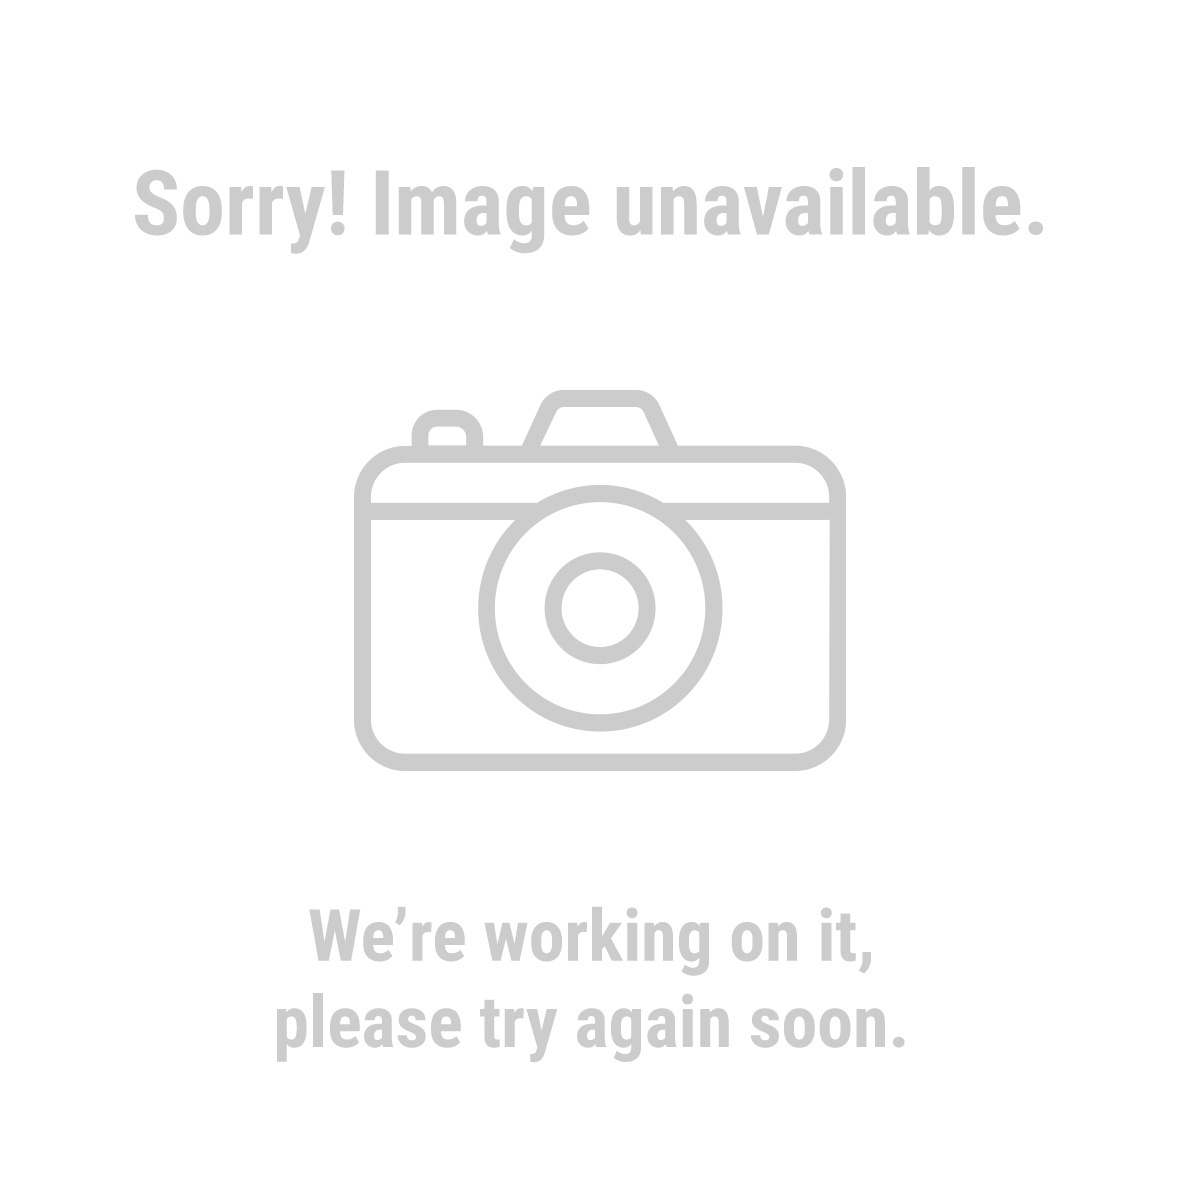 Chicago Electric Welding 62204 240 Volt Inverter Plasma Cutter with Digital Display